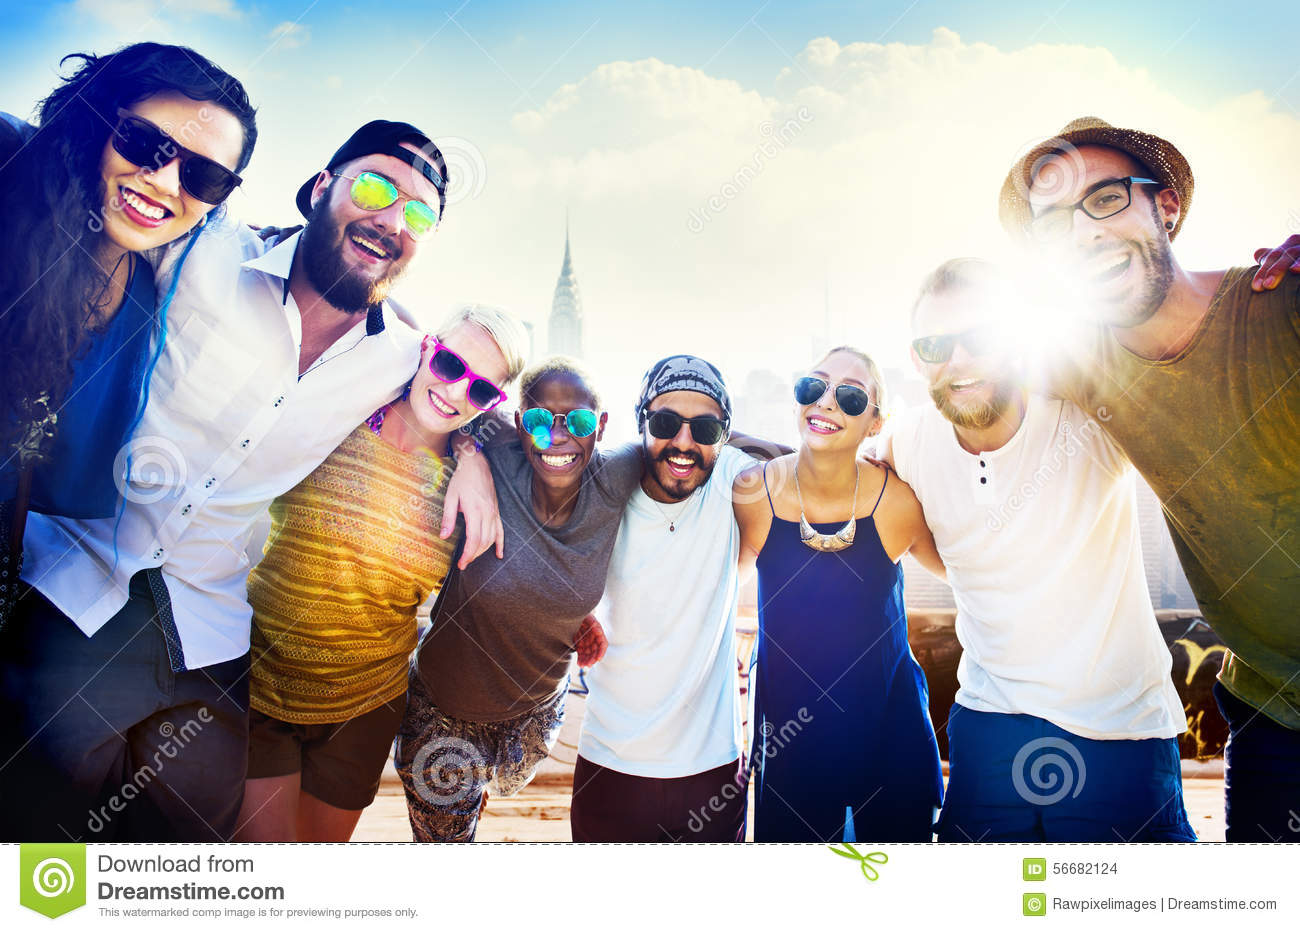 Download Friendship Bonding Relaxation Summer Beach Happiness Concept Stock Photo - Image of beach, event: 56682124